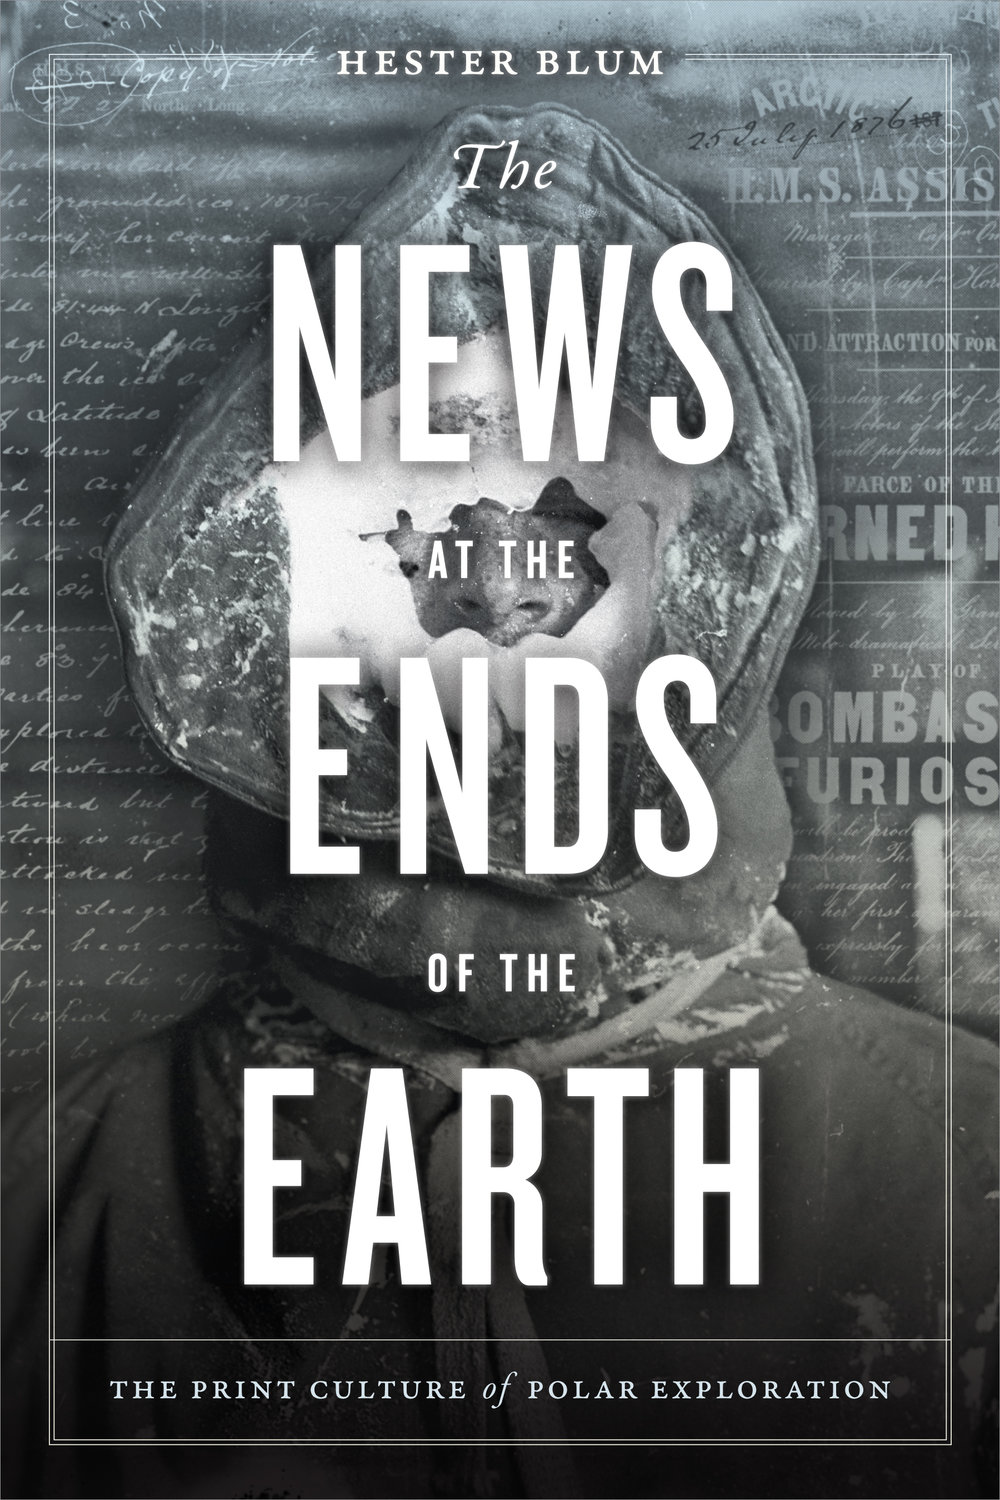 The News at the Ends of the Earth - The News at the Ends of the Earth: The Print Culture of Polar Exploration is forthcoming from Duke University Press. I examine polar expeditionary newspapers and other forms of knowledge that circulate geophysical and climatic extremity, both in the age of polar exploration and in our current moment of climate change and polar resource extraction.